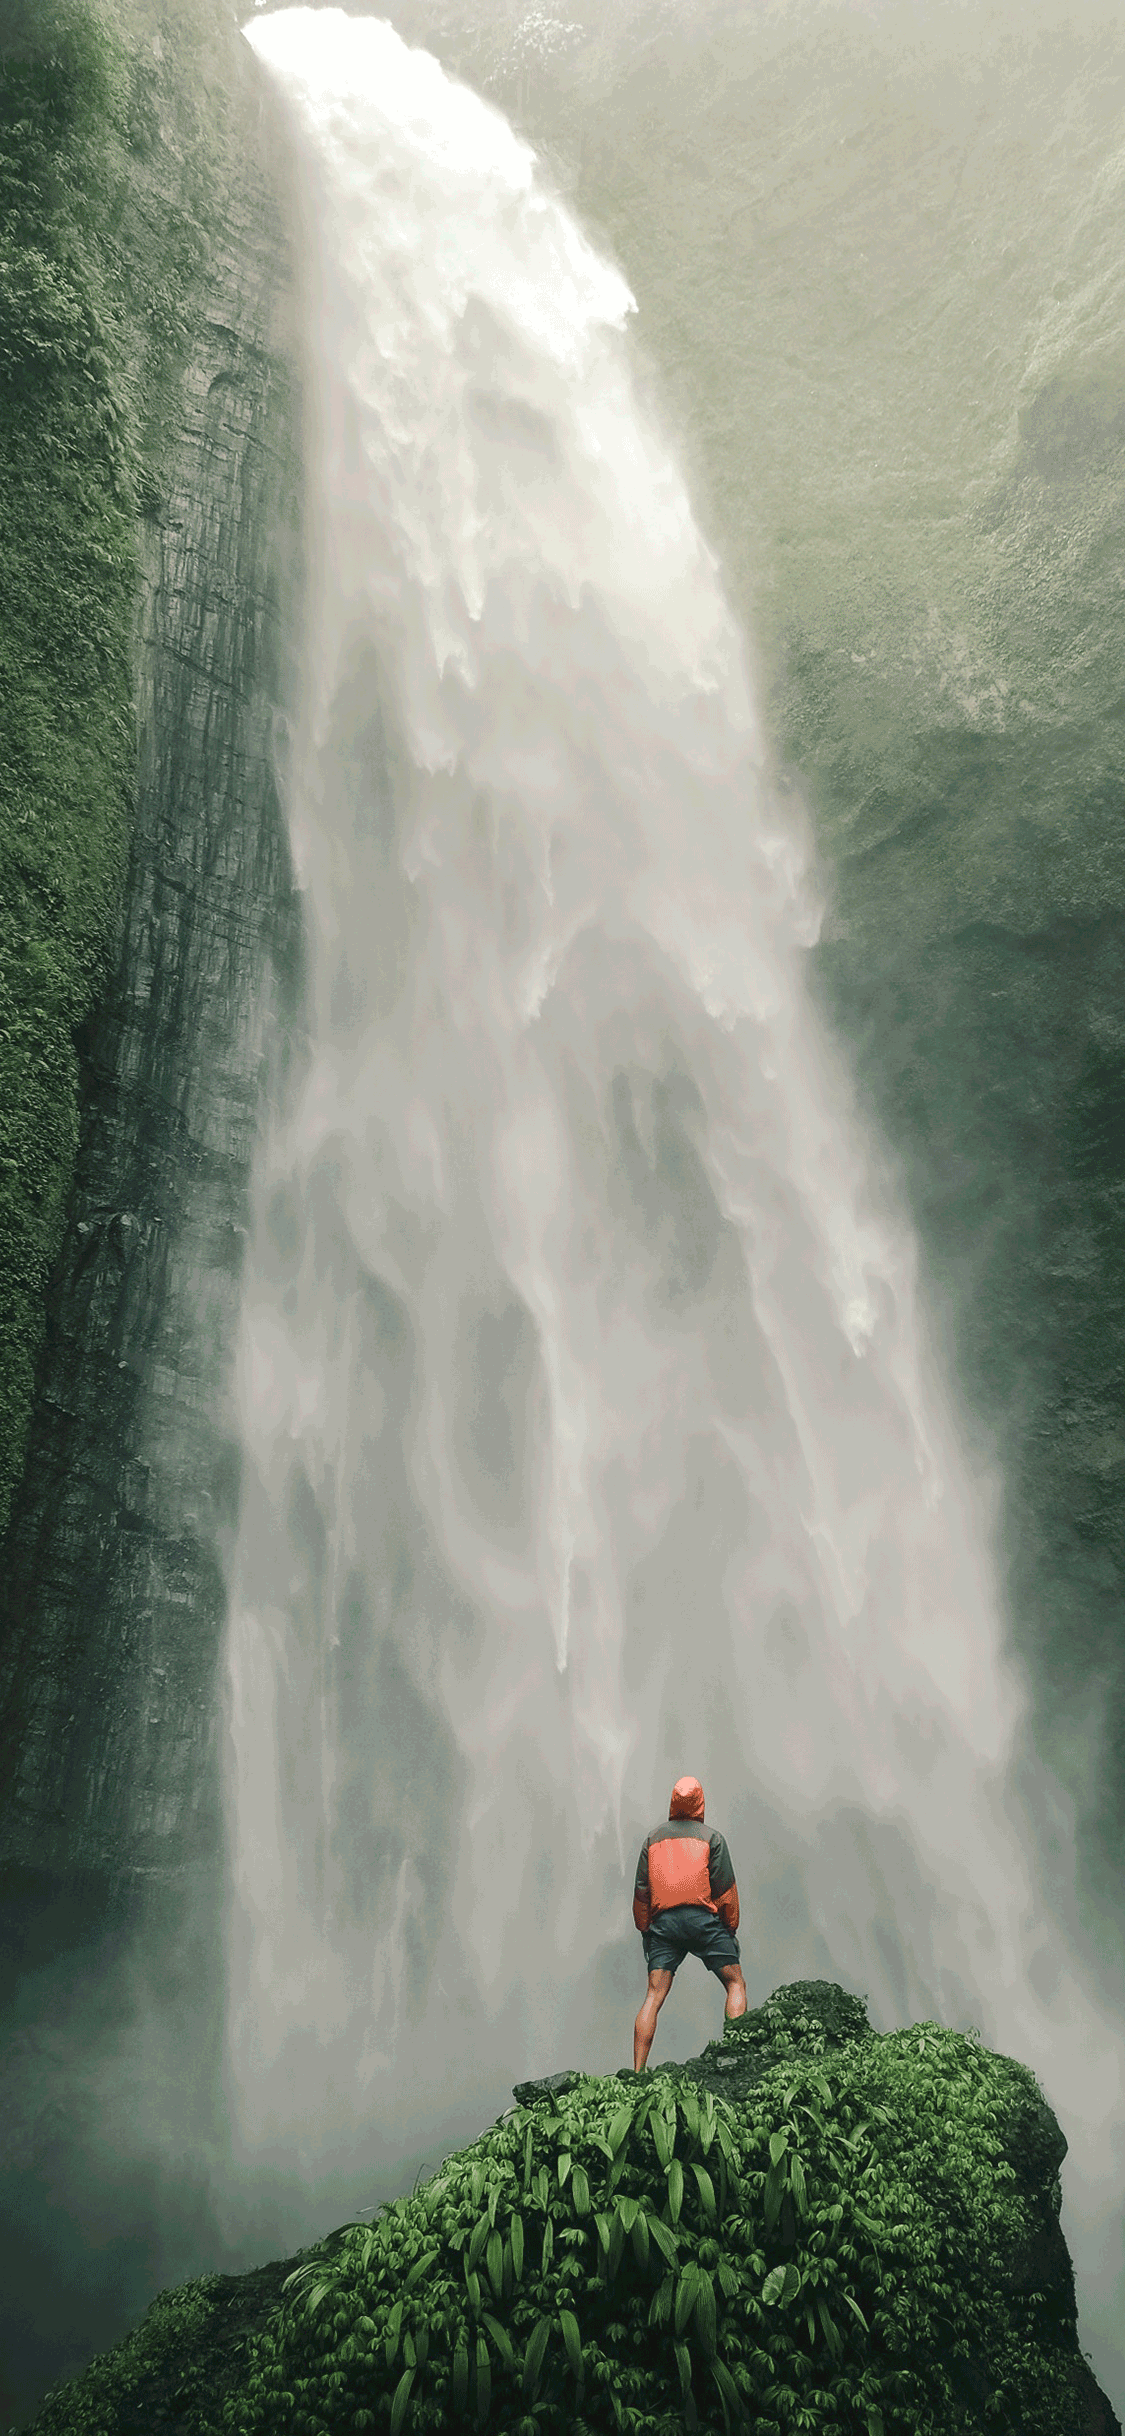 iPhone wallpaper waterfall kabut pelangi Waterfall